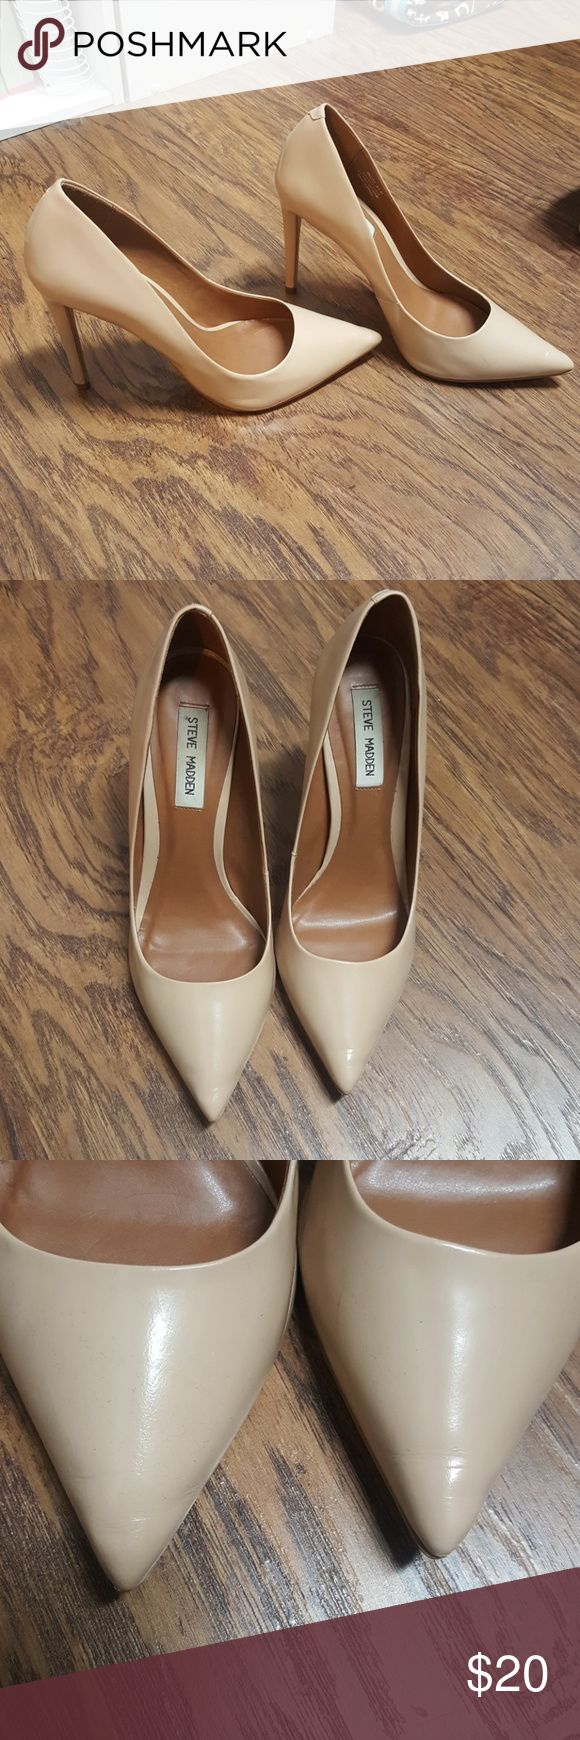 Make offer everything must go. Steeve Madden Heels Cute Steeve Madden heels. Some creasing go the toes and sides that comes with wear. Steve Madden Shoes Heels